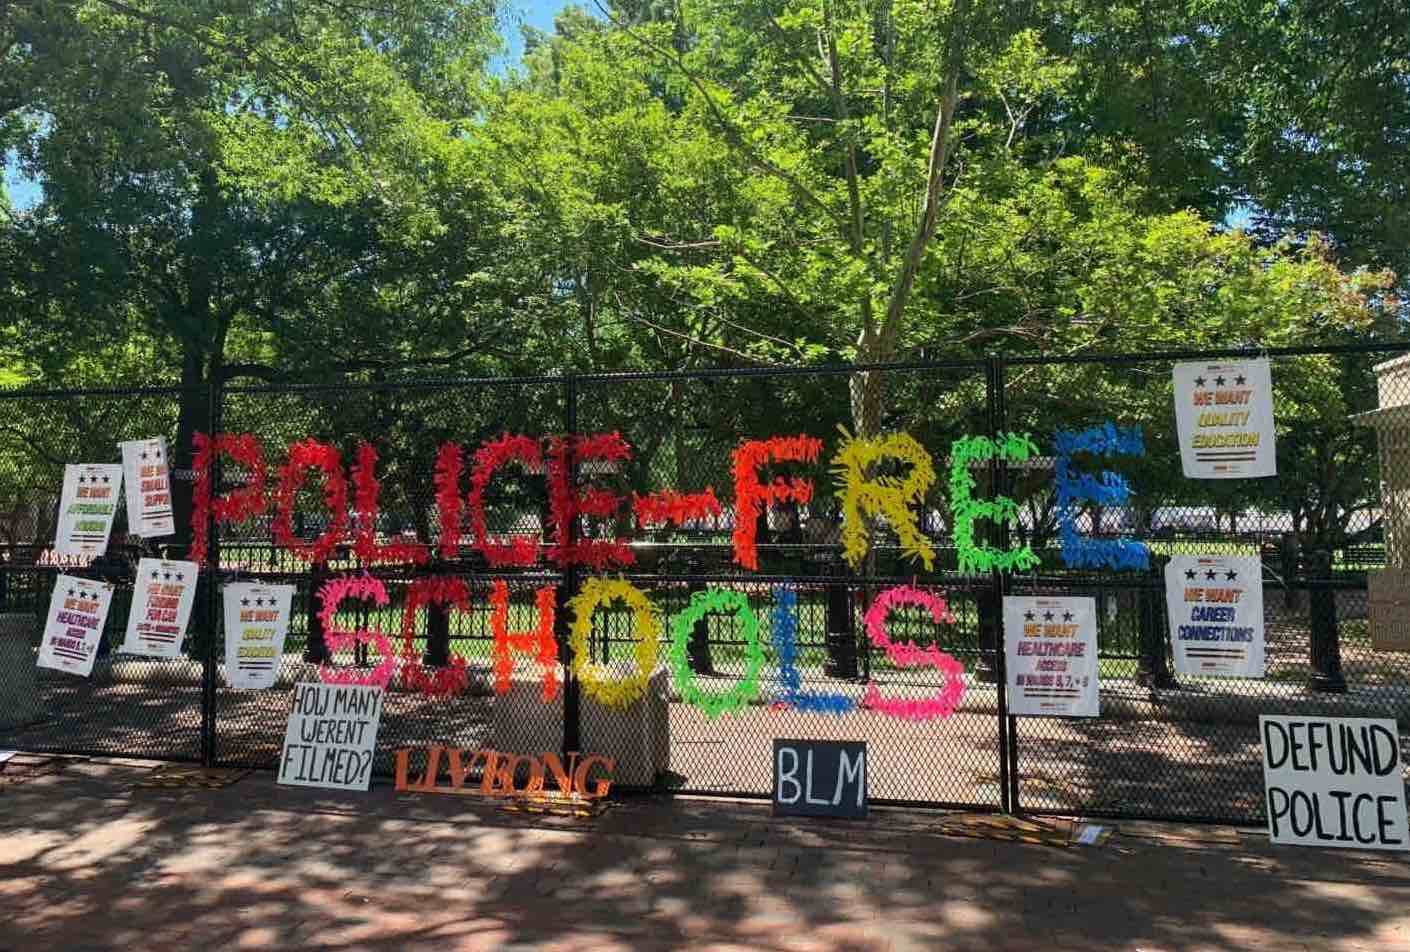 The phrase 'police-free schools' is spelled out in large colorful letters made out of hundreds of tied ribbons, and then surrounded by anti-police placards